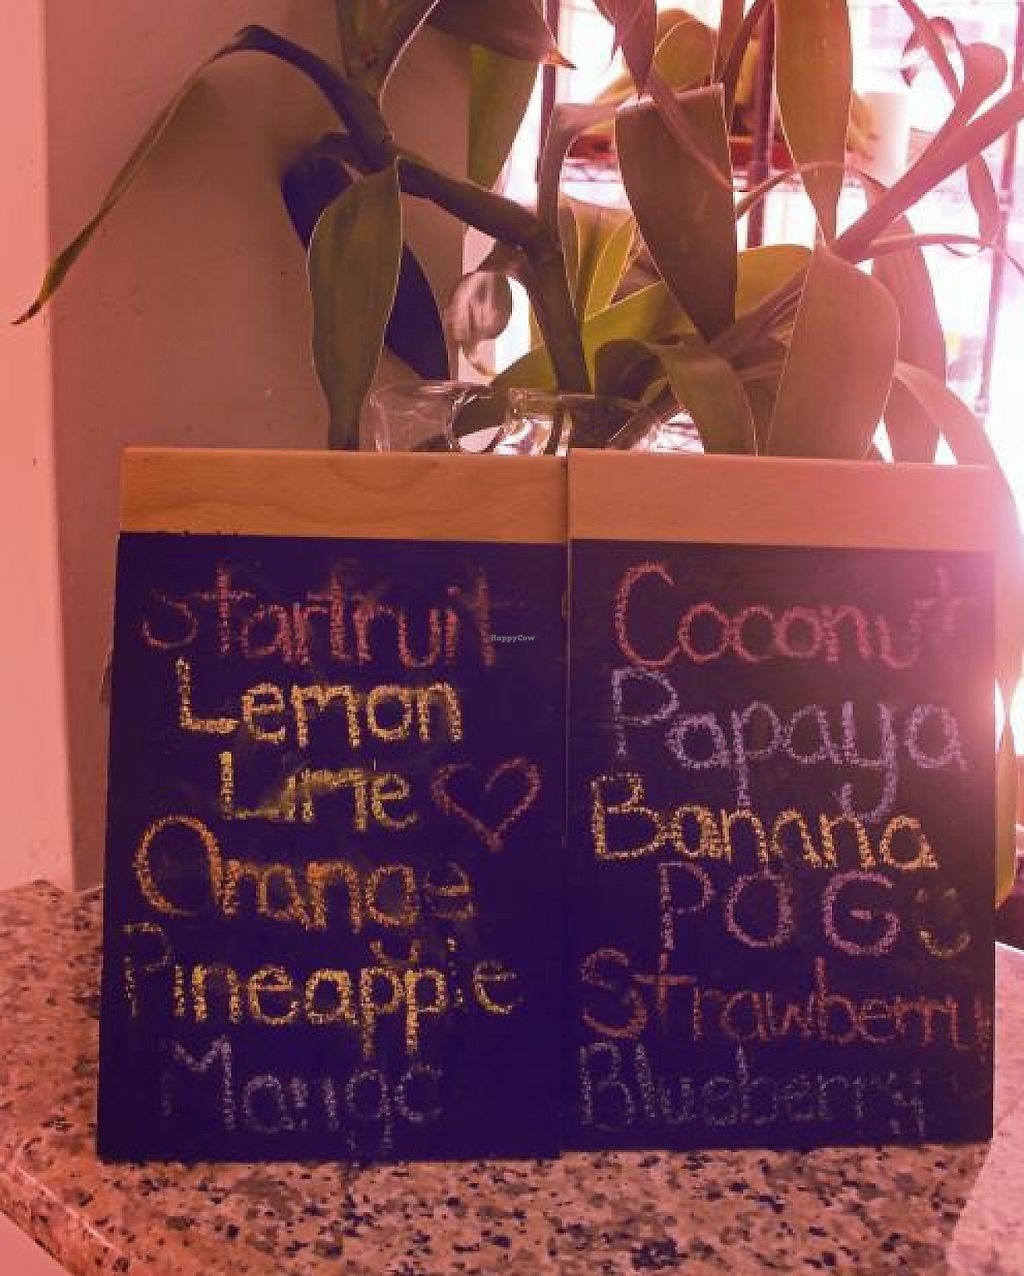 """Photo of Bamboo Fresh  by <a href=""""/members/profile/april_love7"""">april_love7</a> <br/>Choose from these AMAZING local fruits to create your own smoothie!!!  <br/> February 10, 2013  - <a href='/contact/abuse/image/36864/199597'>Report</a>"""